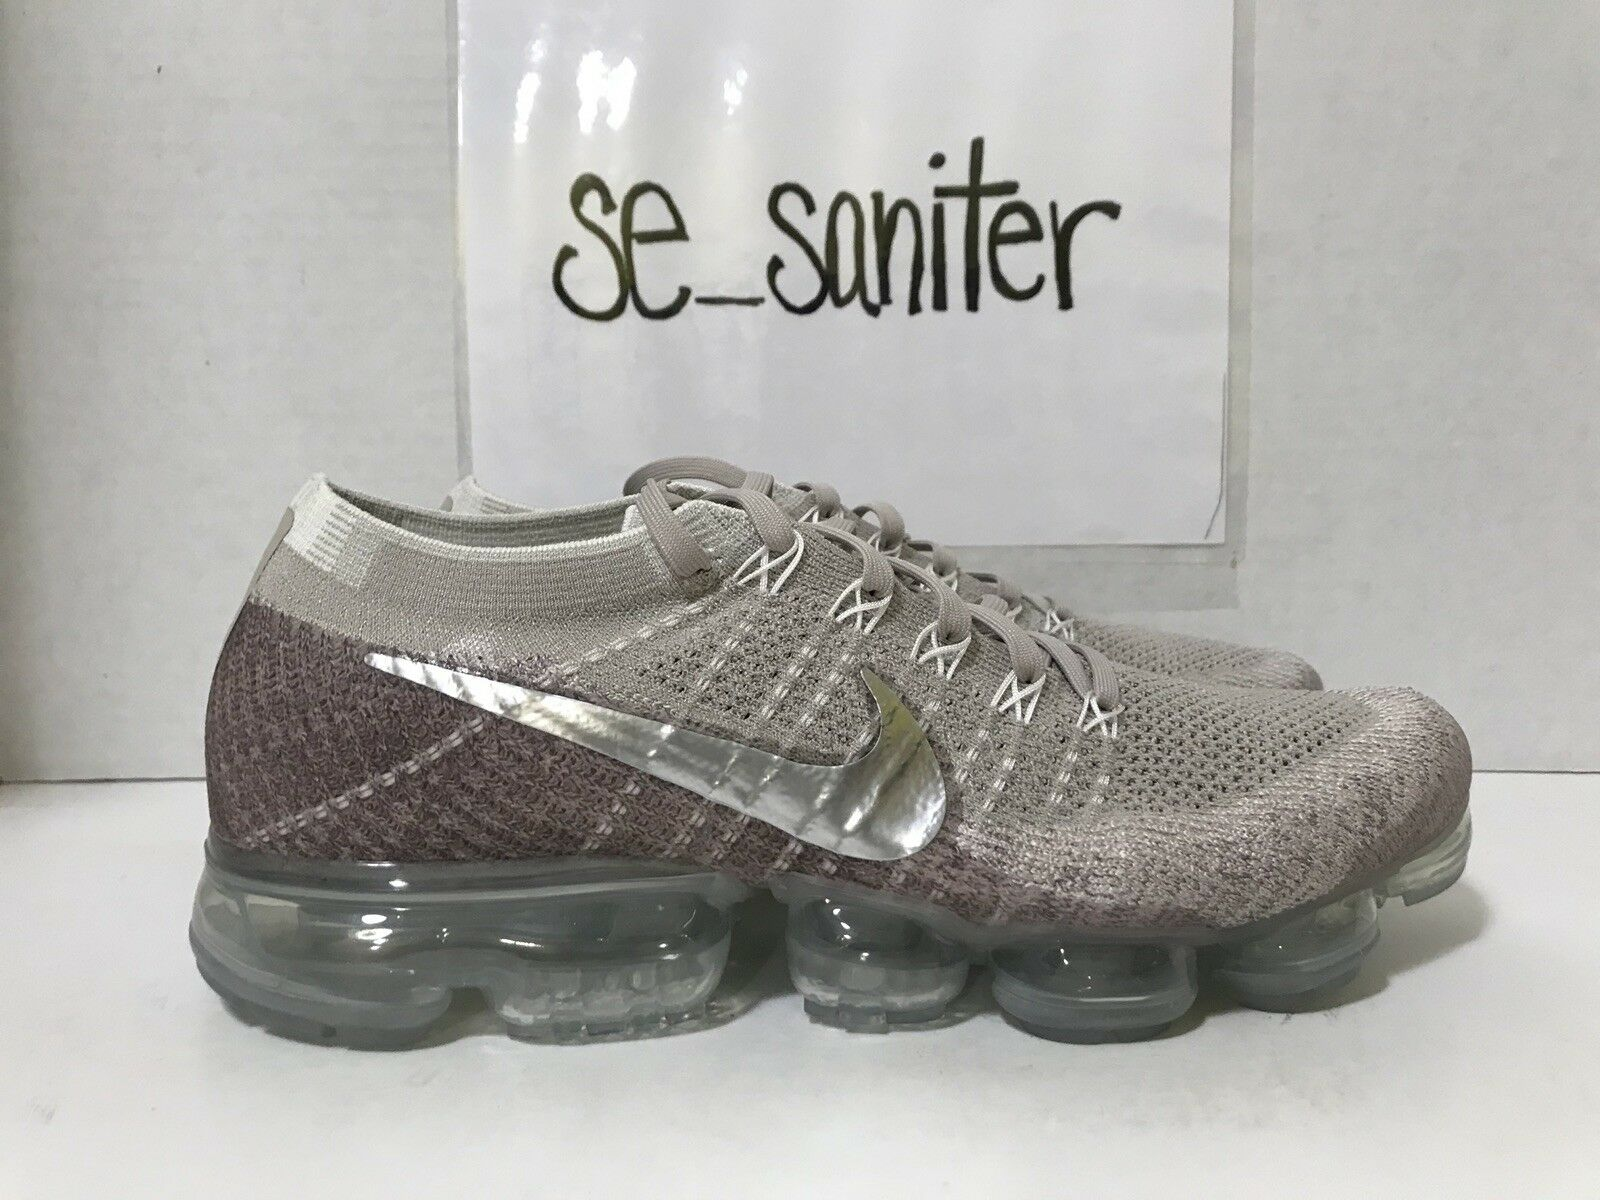 b945942ec0 Nike Womens Air Vapormax Flyknit String Chrome Sunset Glow 849557-202 Size  12